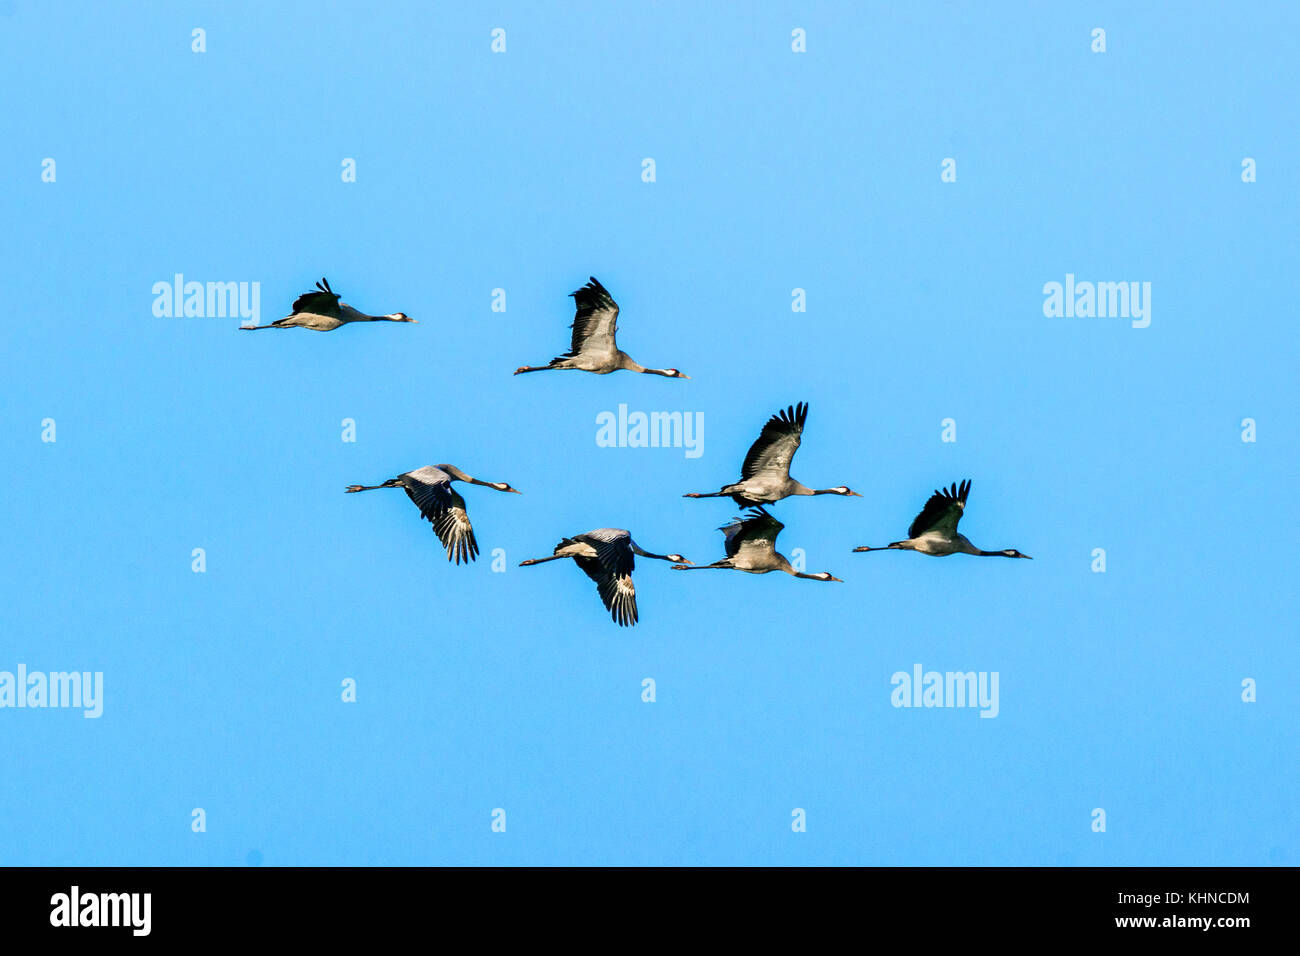 Flock of cranes flying in the air on clear blue sky - Stock Image